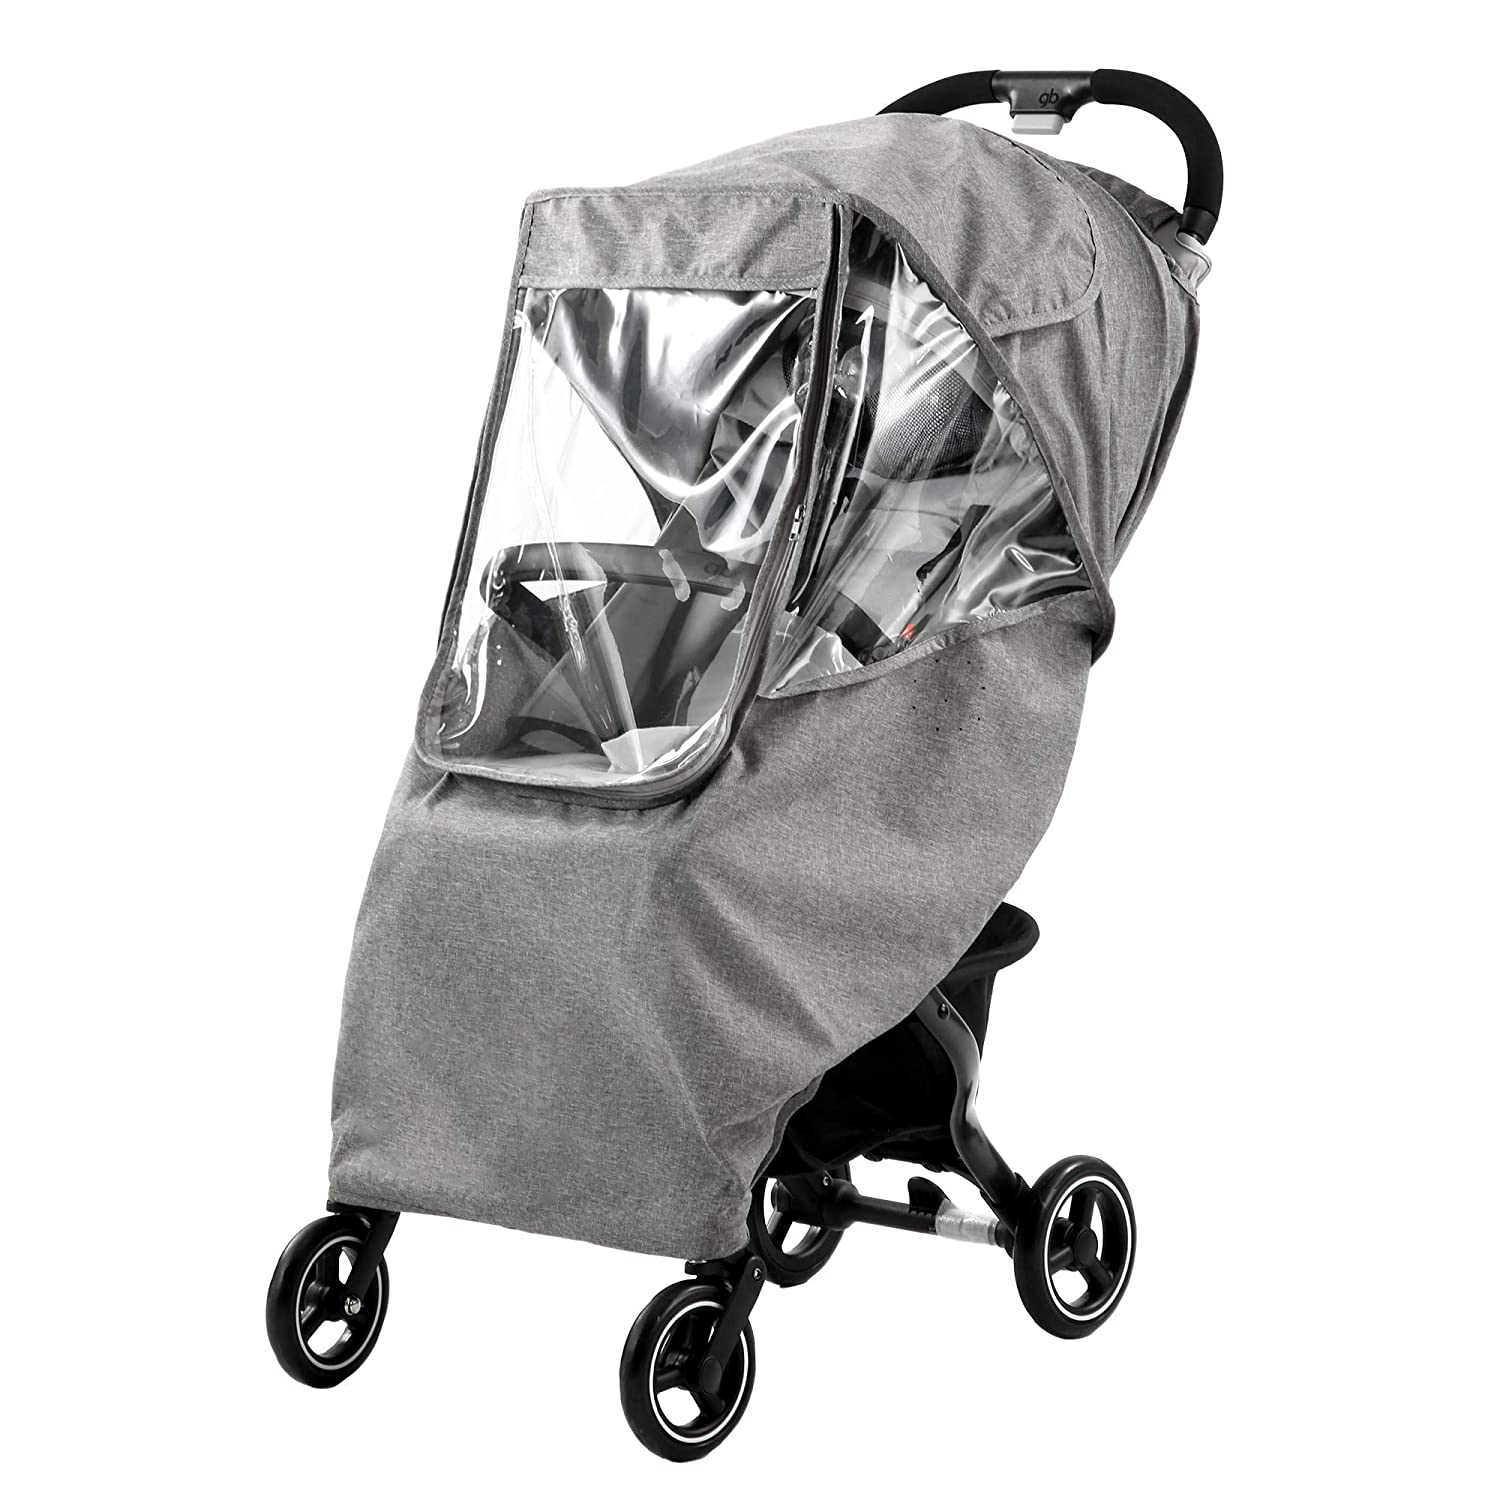 Baby Stroller Weather Shields, Pushchairs Accessories Strollers Breathable Raincoat, Stroller Rain Cover Universal, Protect from Rain Snow Dust Insects Waterproof Windproof (Gray)